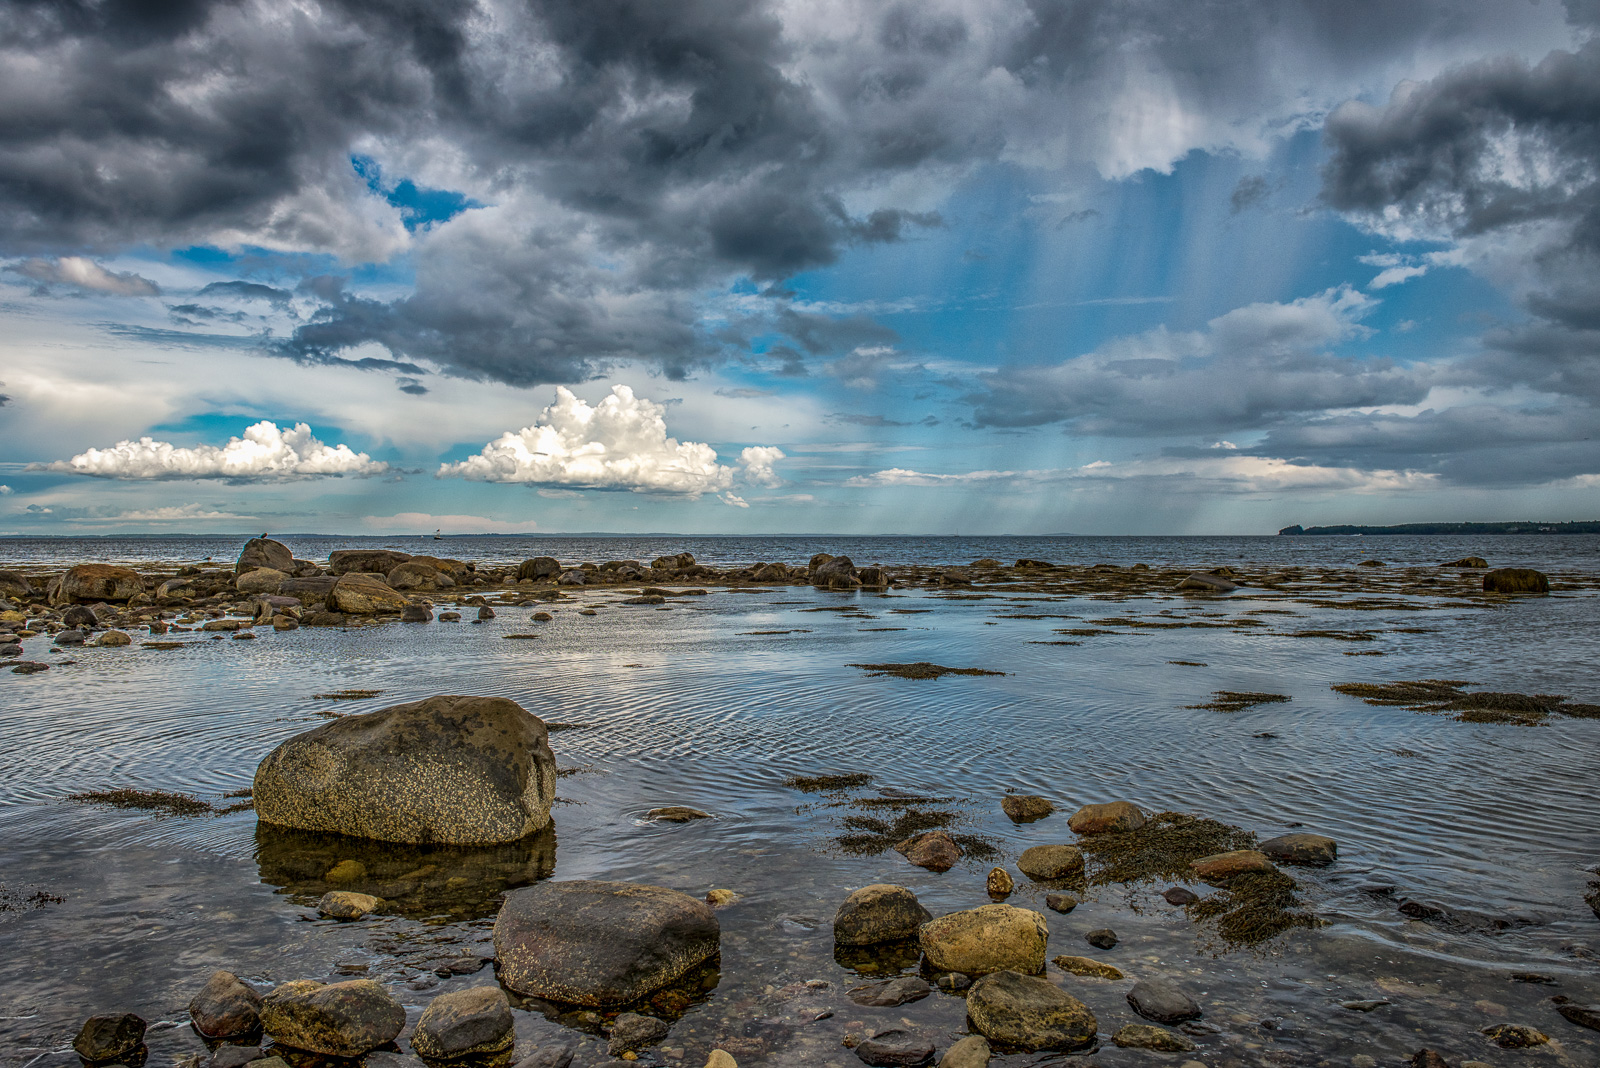 Samoset, penobscot bay, maine, coast, storm, new england, photo